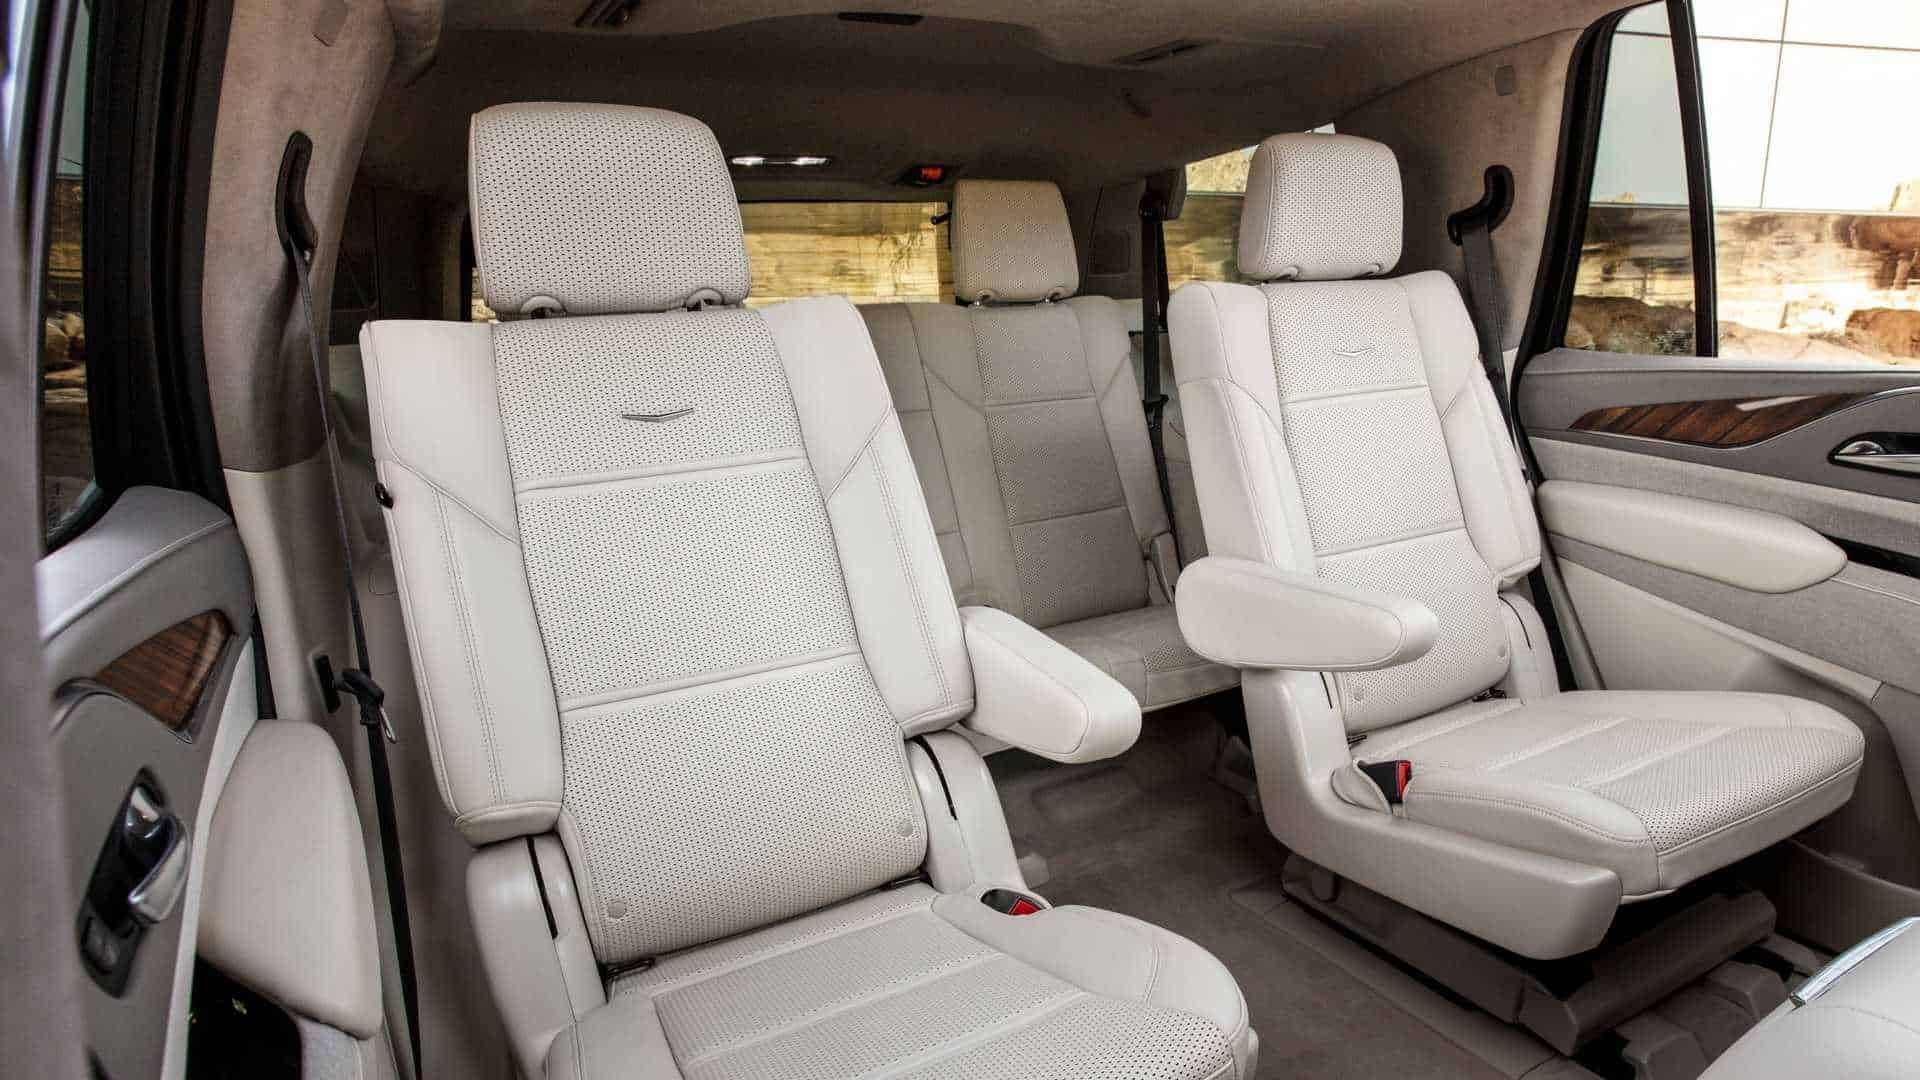 New, 2021 Cadillac Escalade Luxury SUV back seats